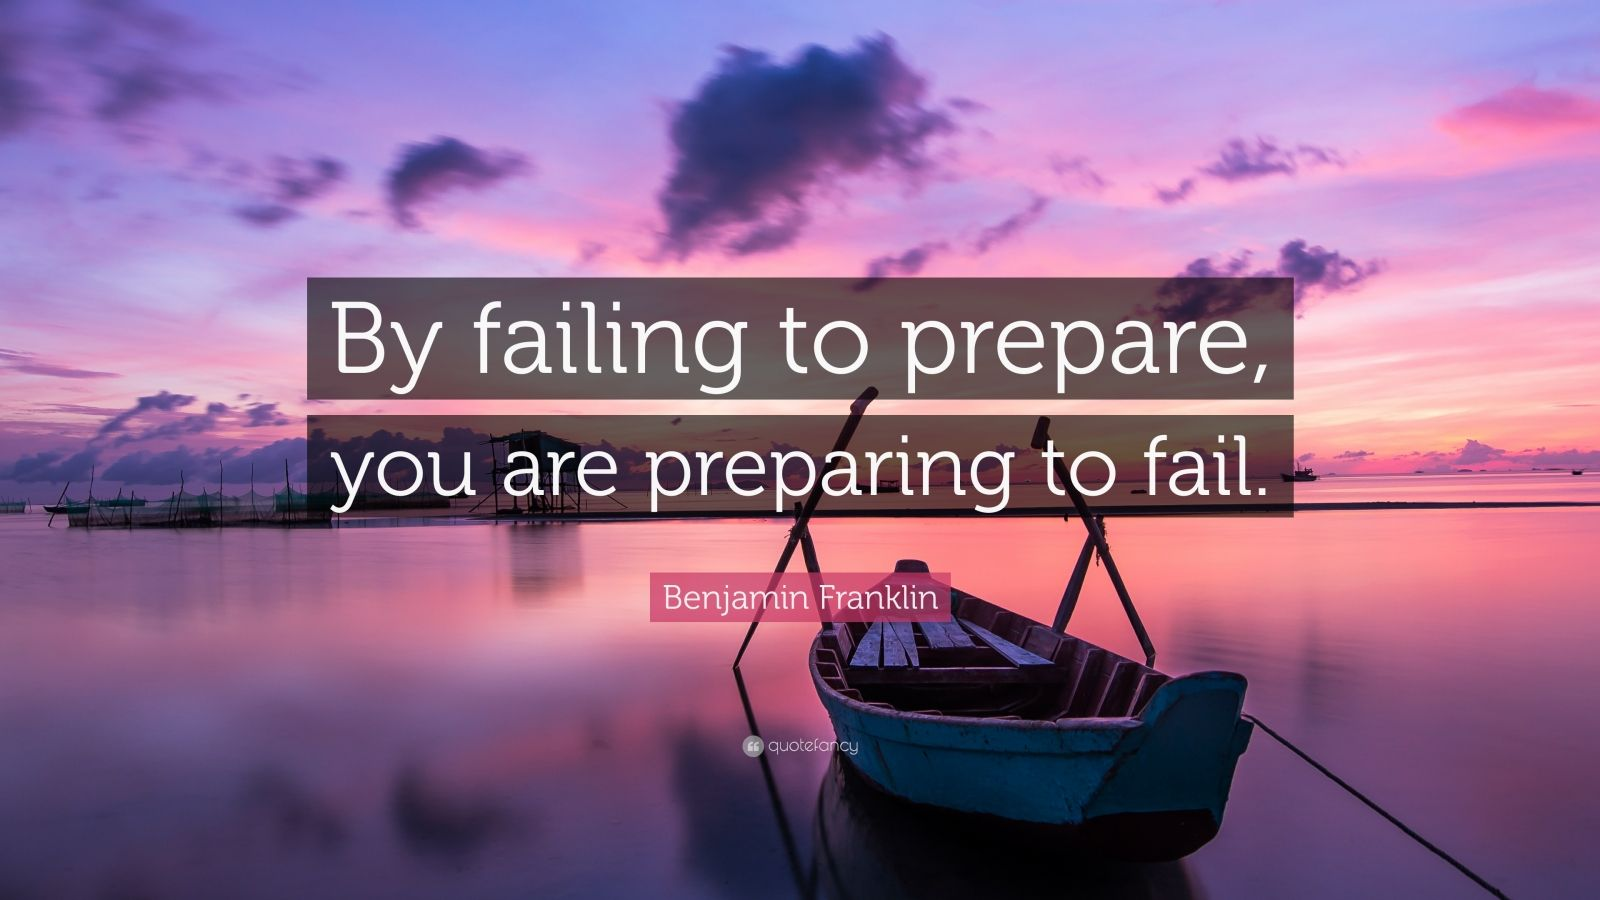 Benjamin Franklin Quote By Failing To Prepare You Are